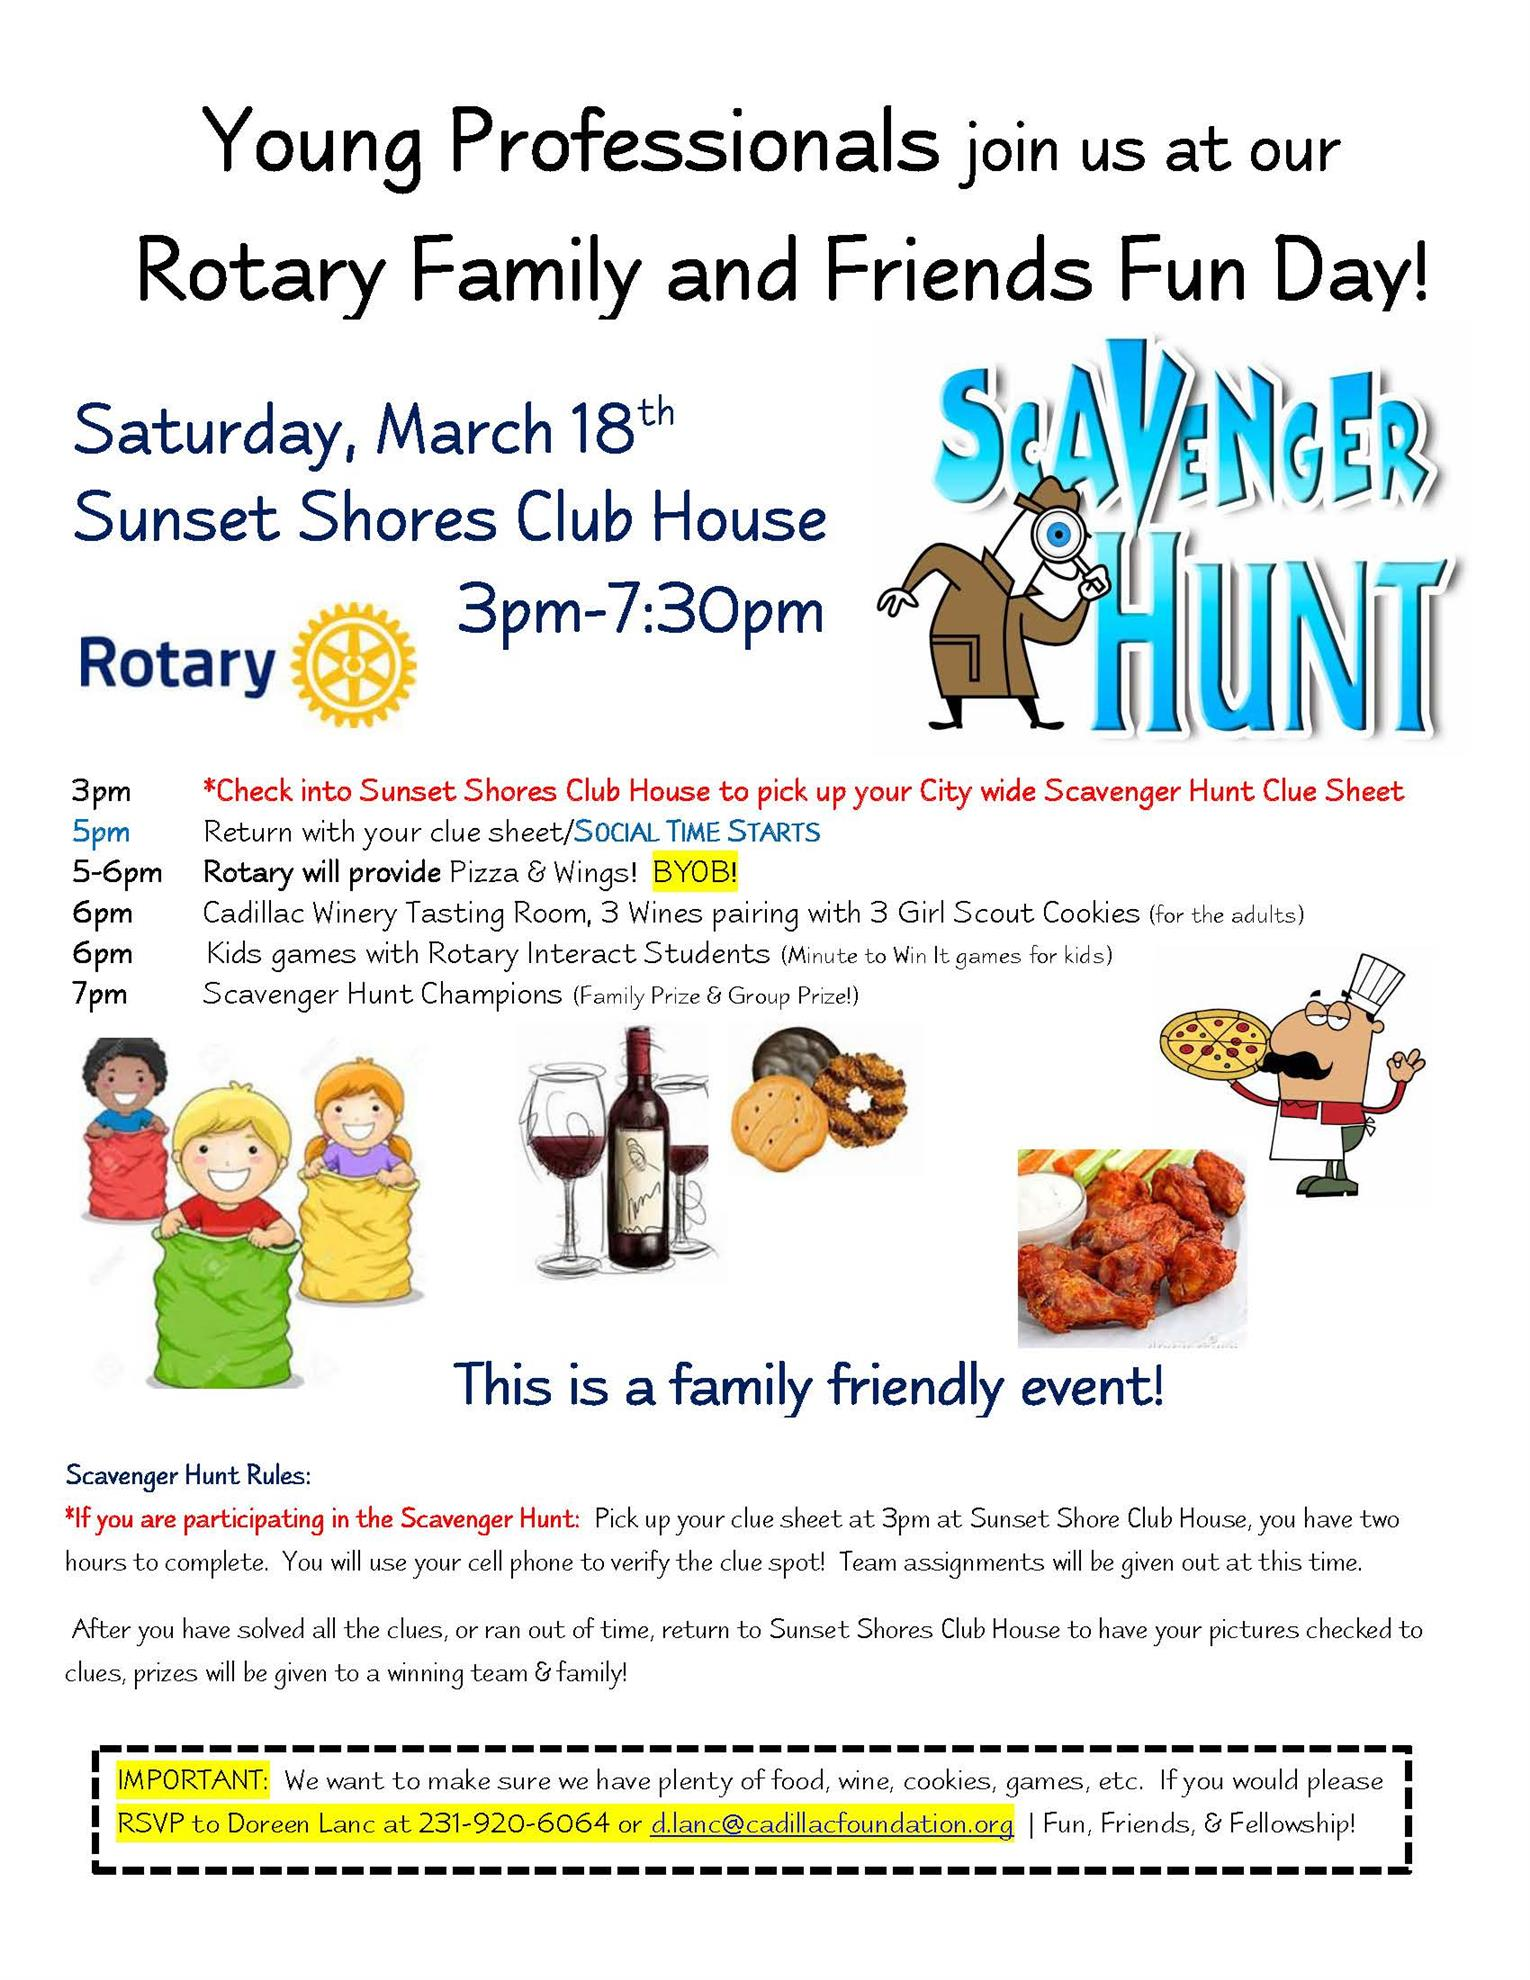 Rotary Family Friends Fun Day